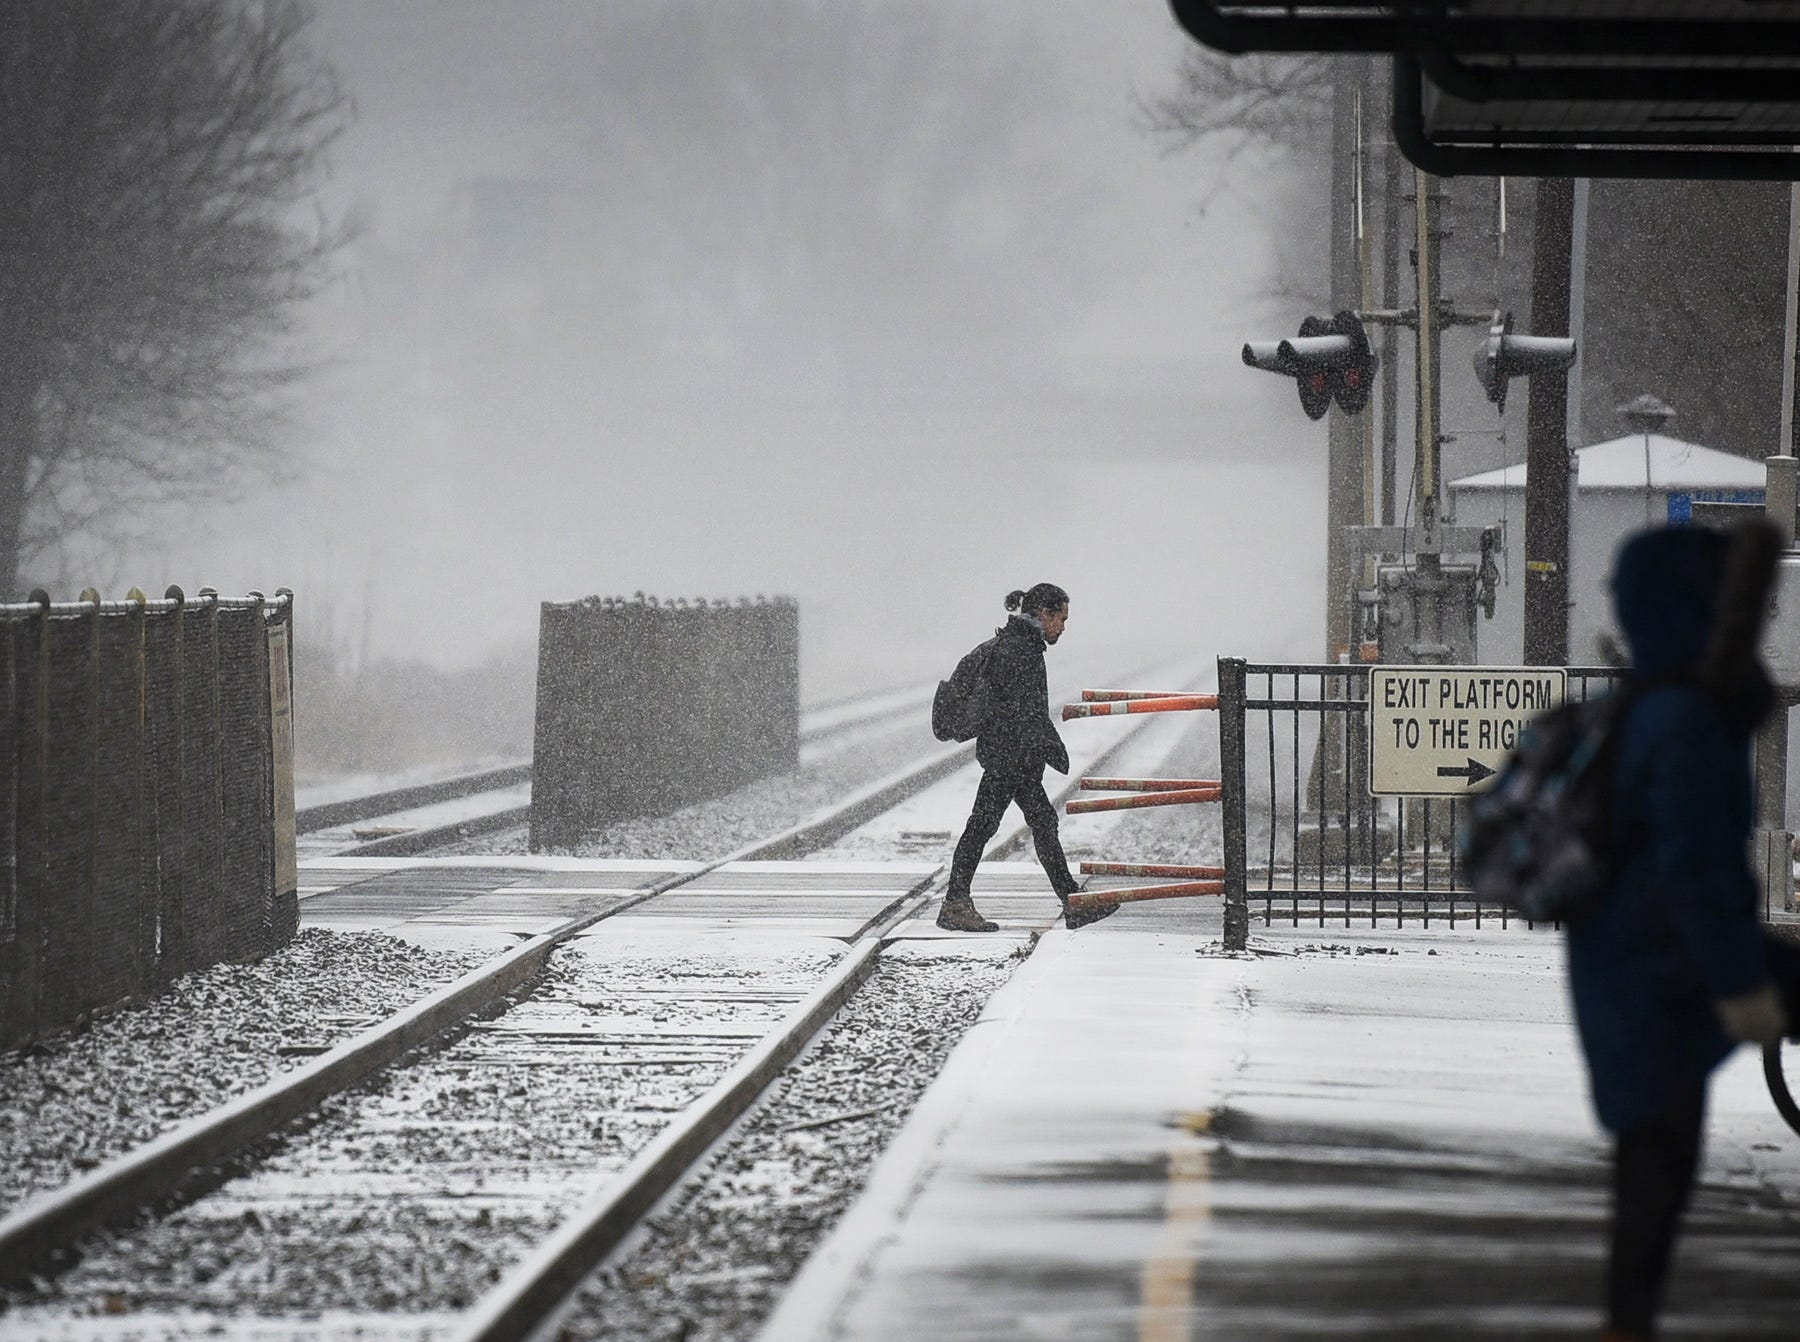 A pedestrian crosses the rail road tracks as snow begins to fall in Fair Lawn on 02/20/19.